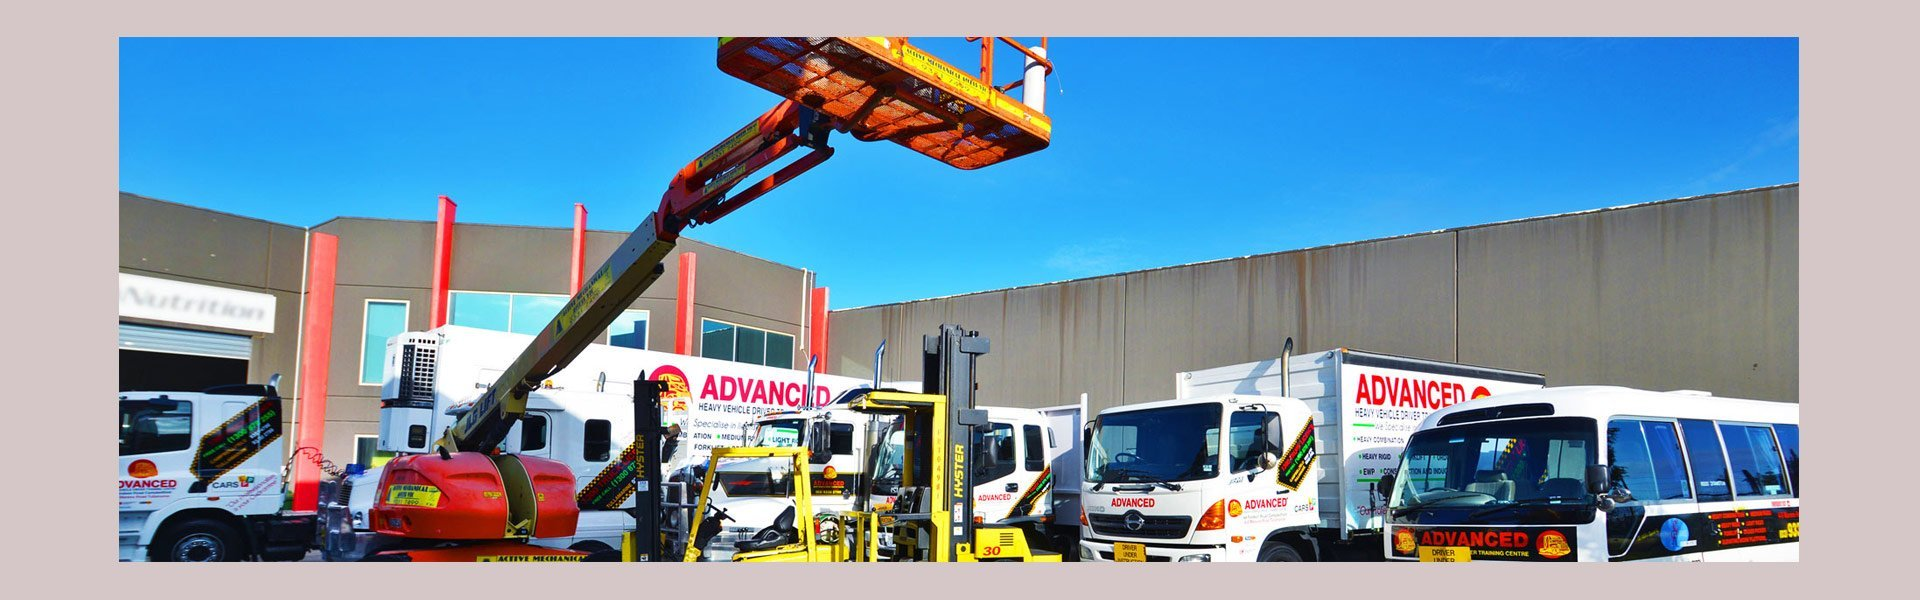 australia wide forklift training centre training veichles